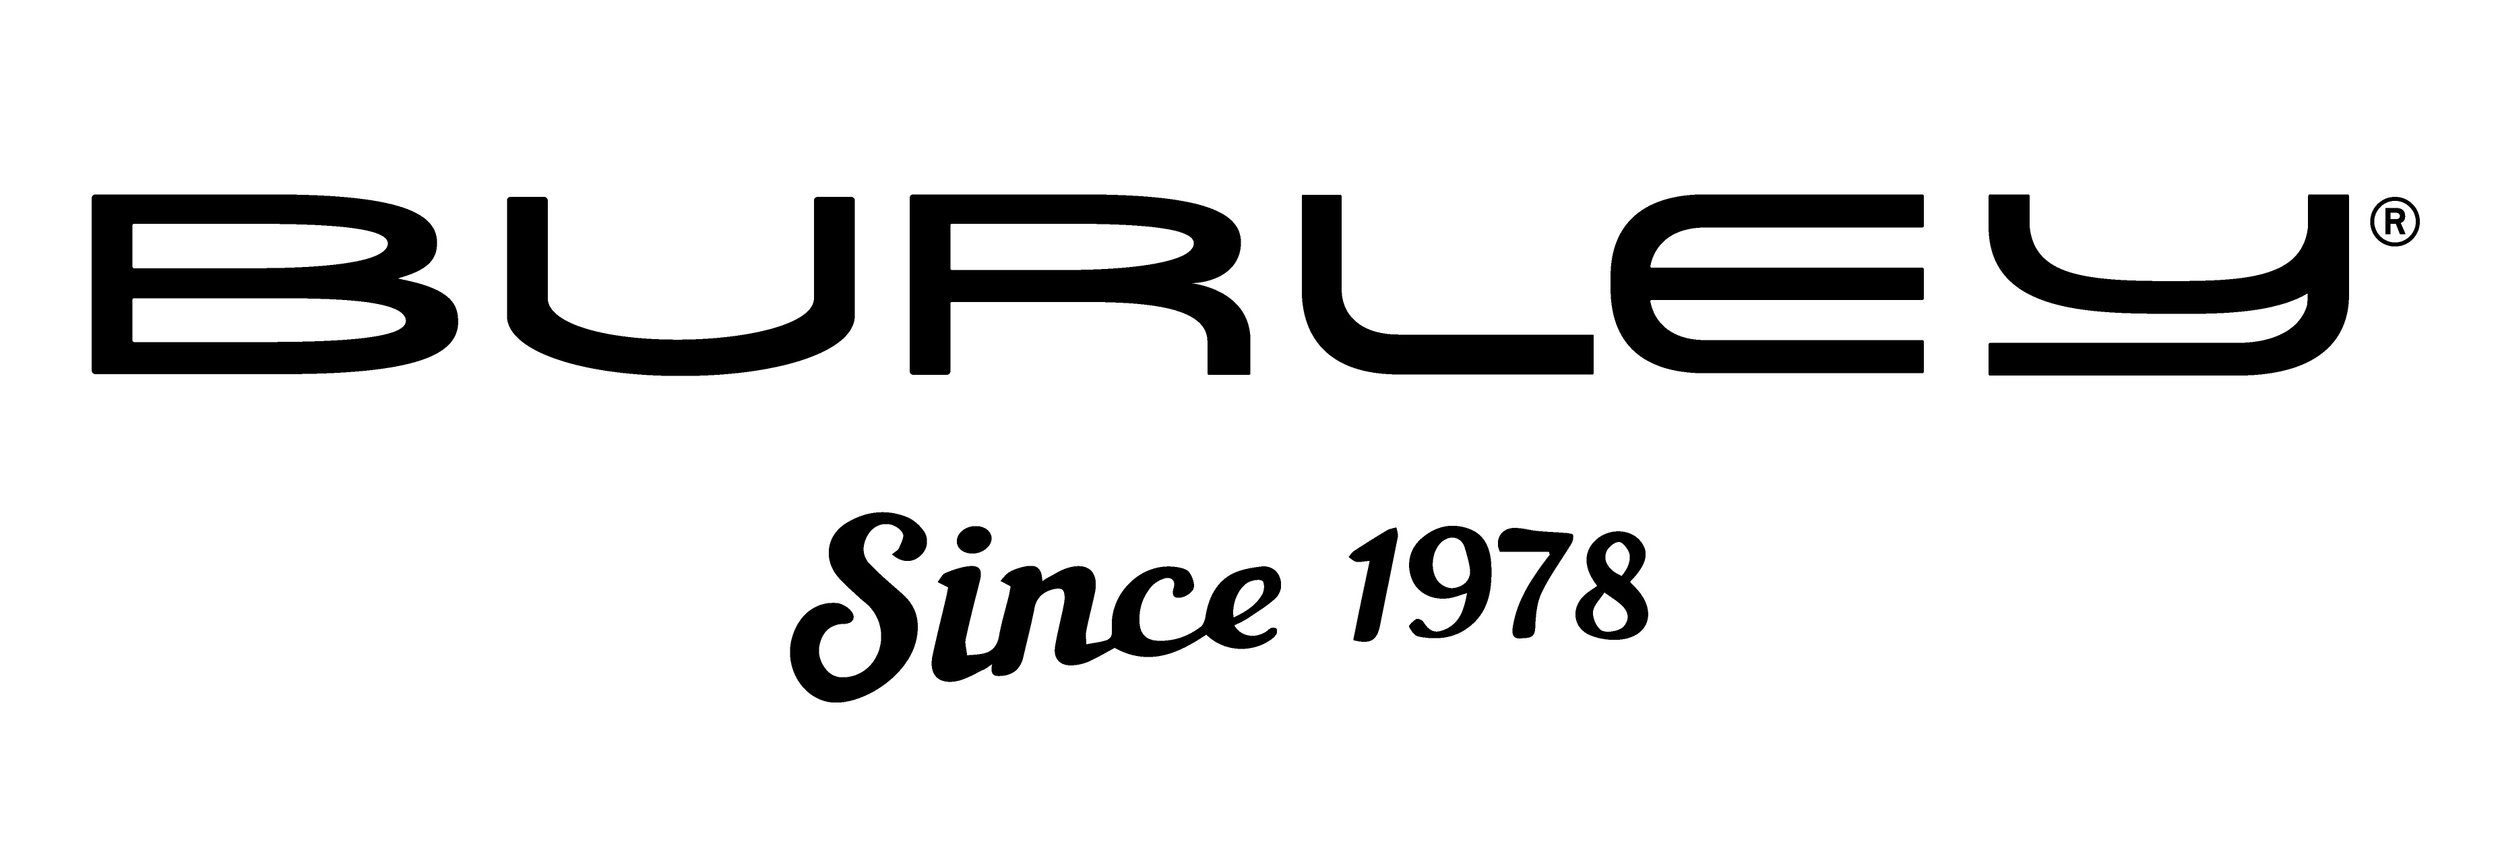 Burley_Since-1978_BLACK.jpg